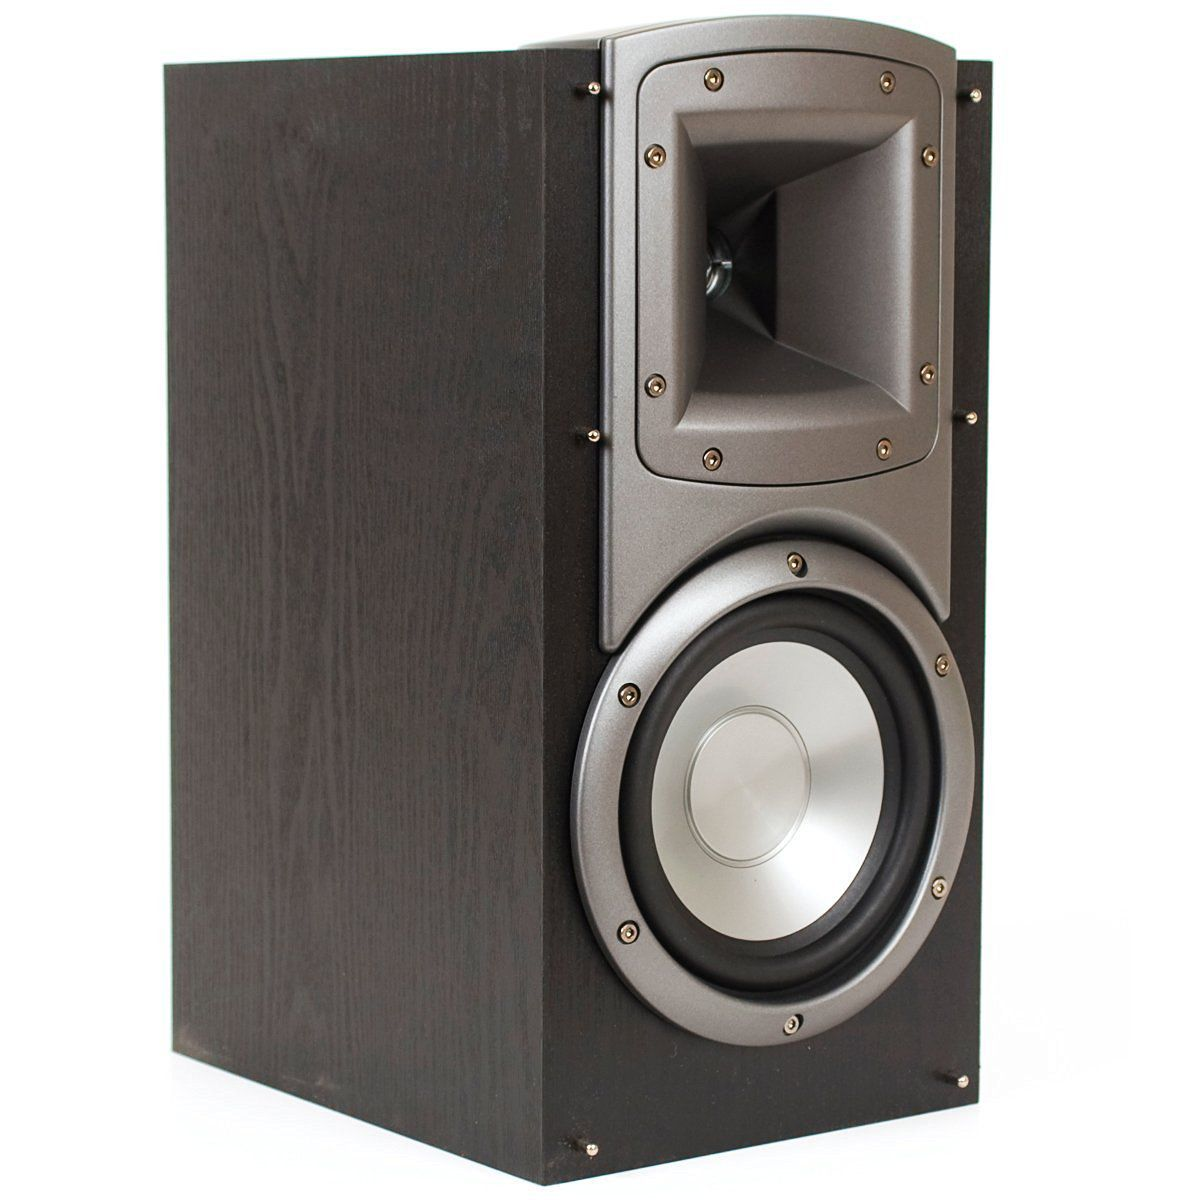 bowers and wilkins 685. klipsch b-3 synergy bookshelf loudspeakers bowers and wilkins 685 m